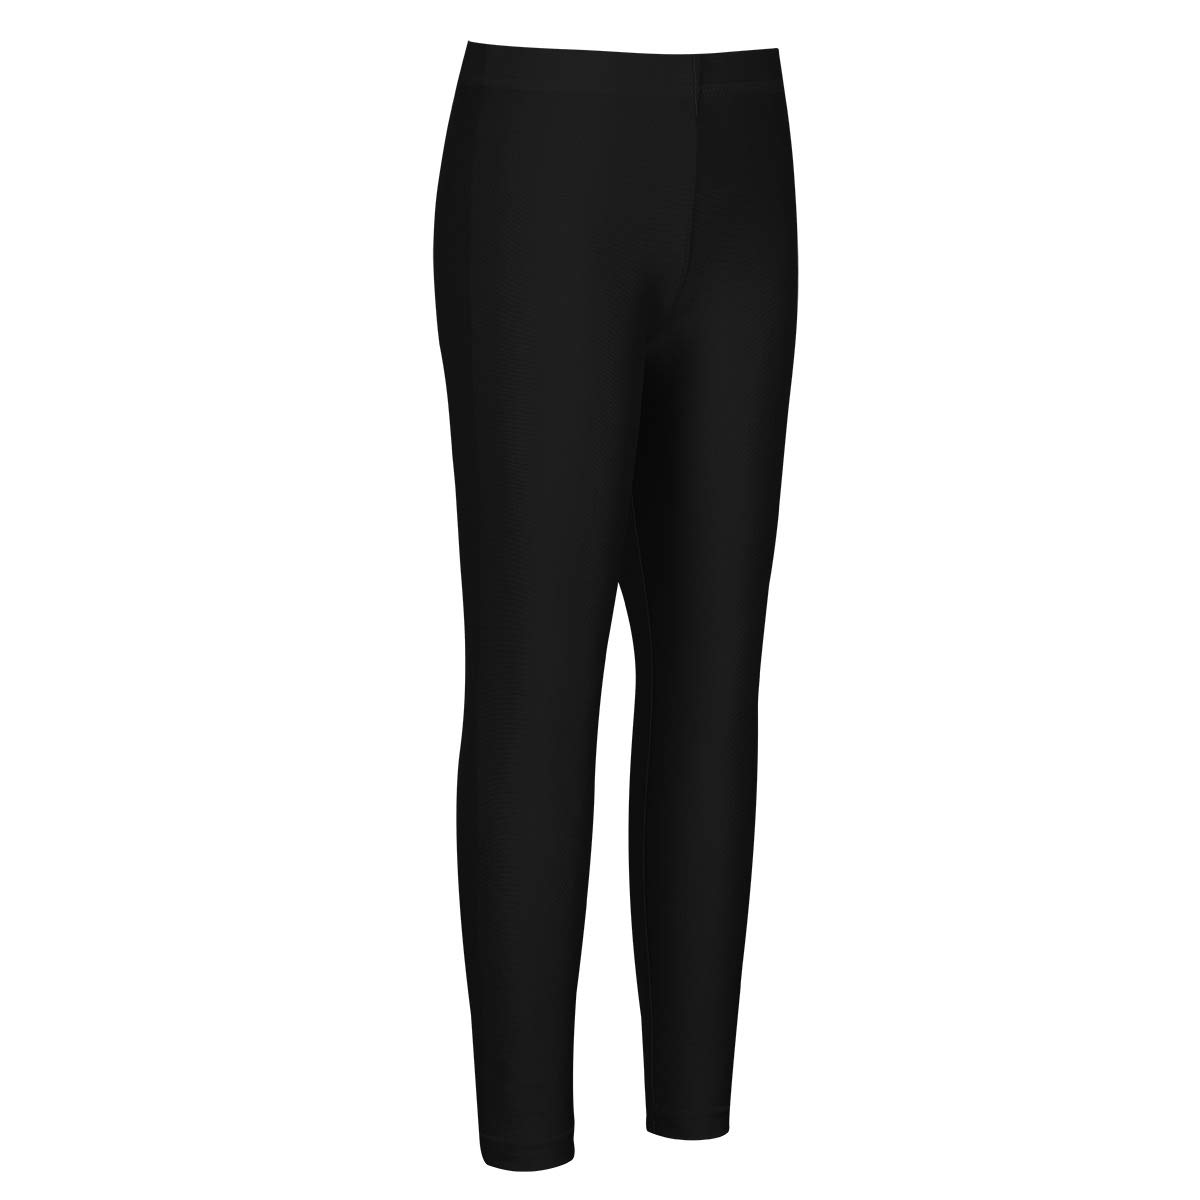 Freebily Kids Girls Seamless Legging for Active School Play Soft Basic Solid Cotton Ankle Length Stretchy Tights Black 4-5